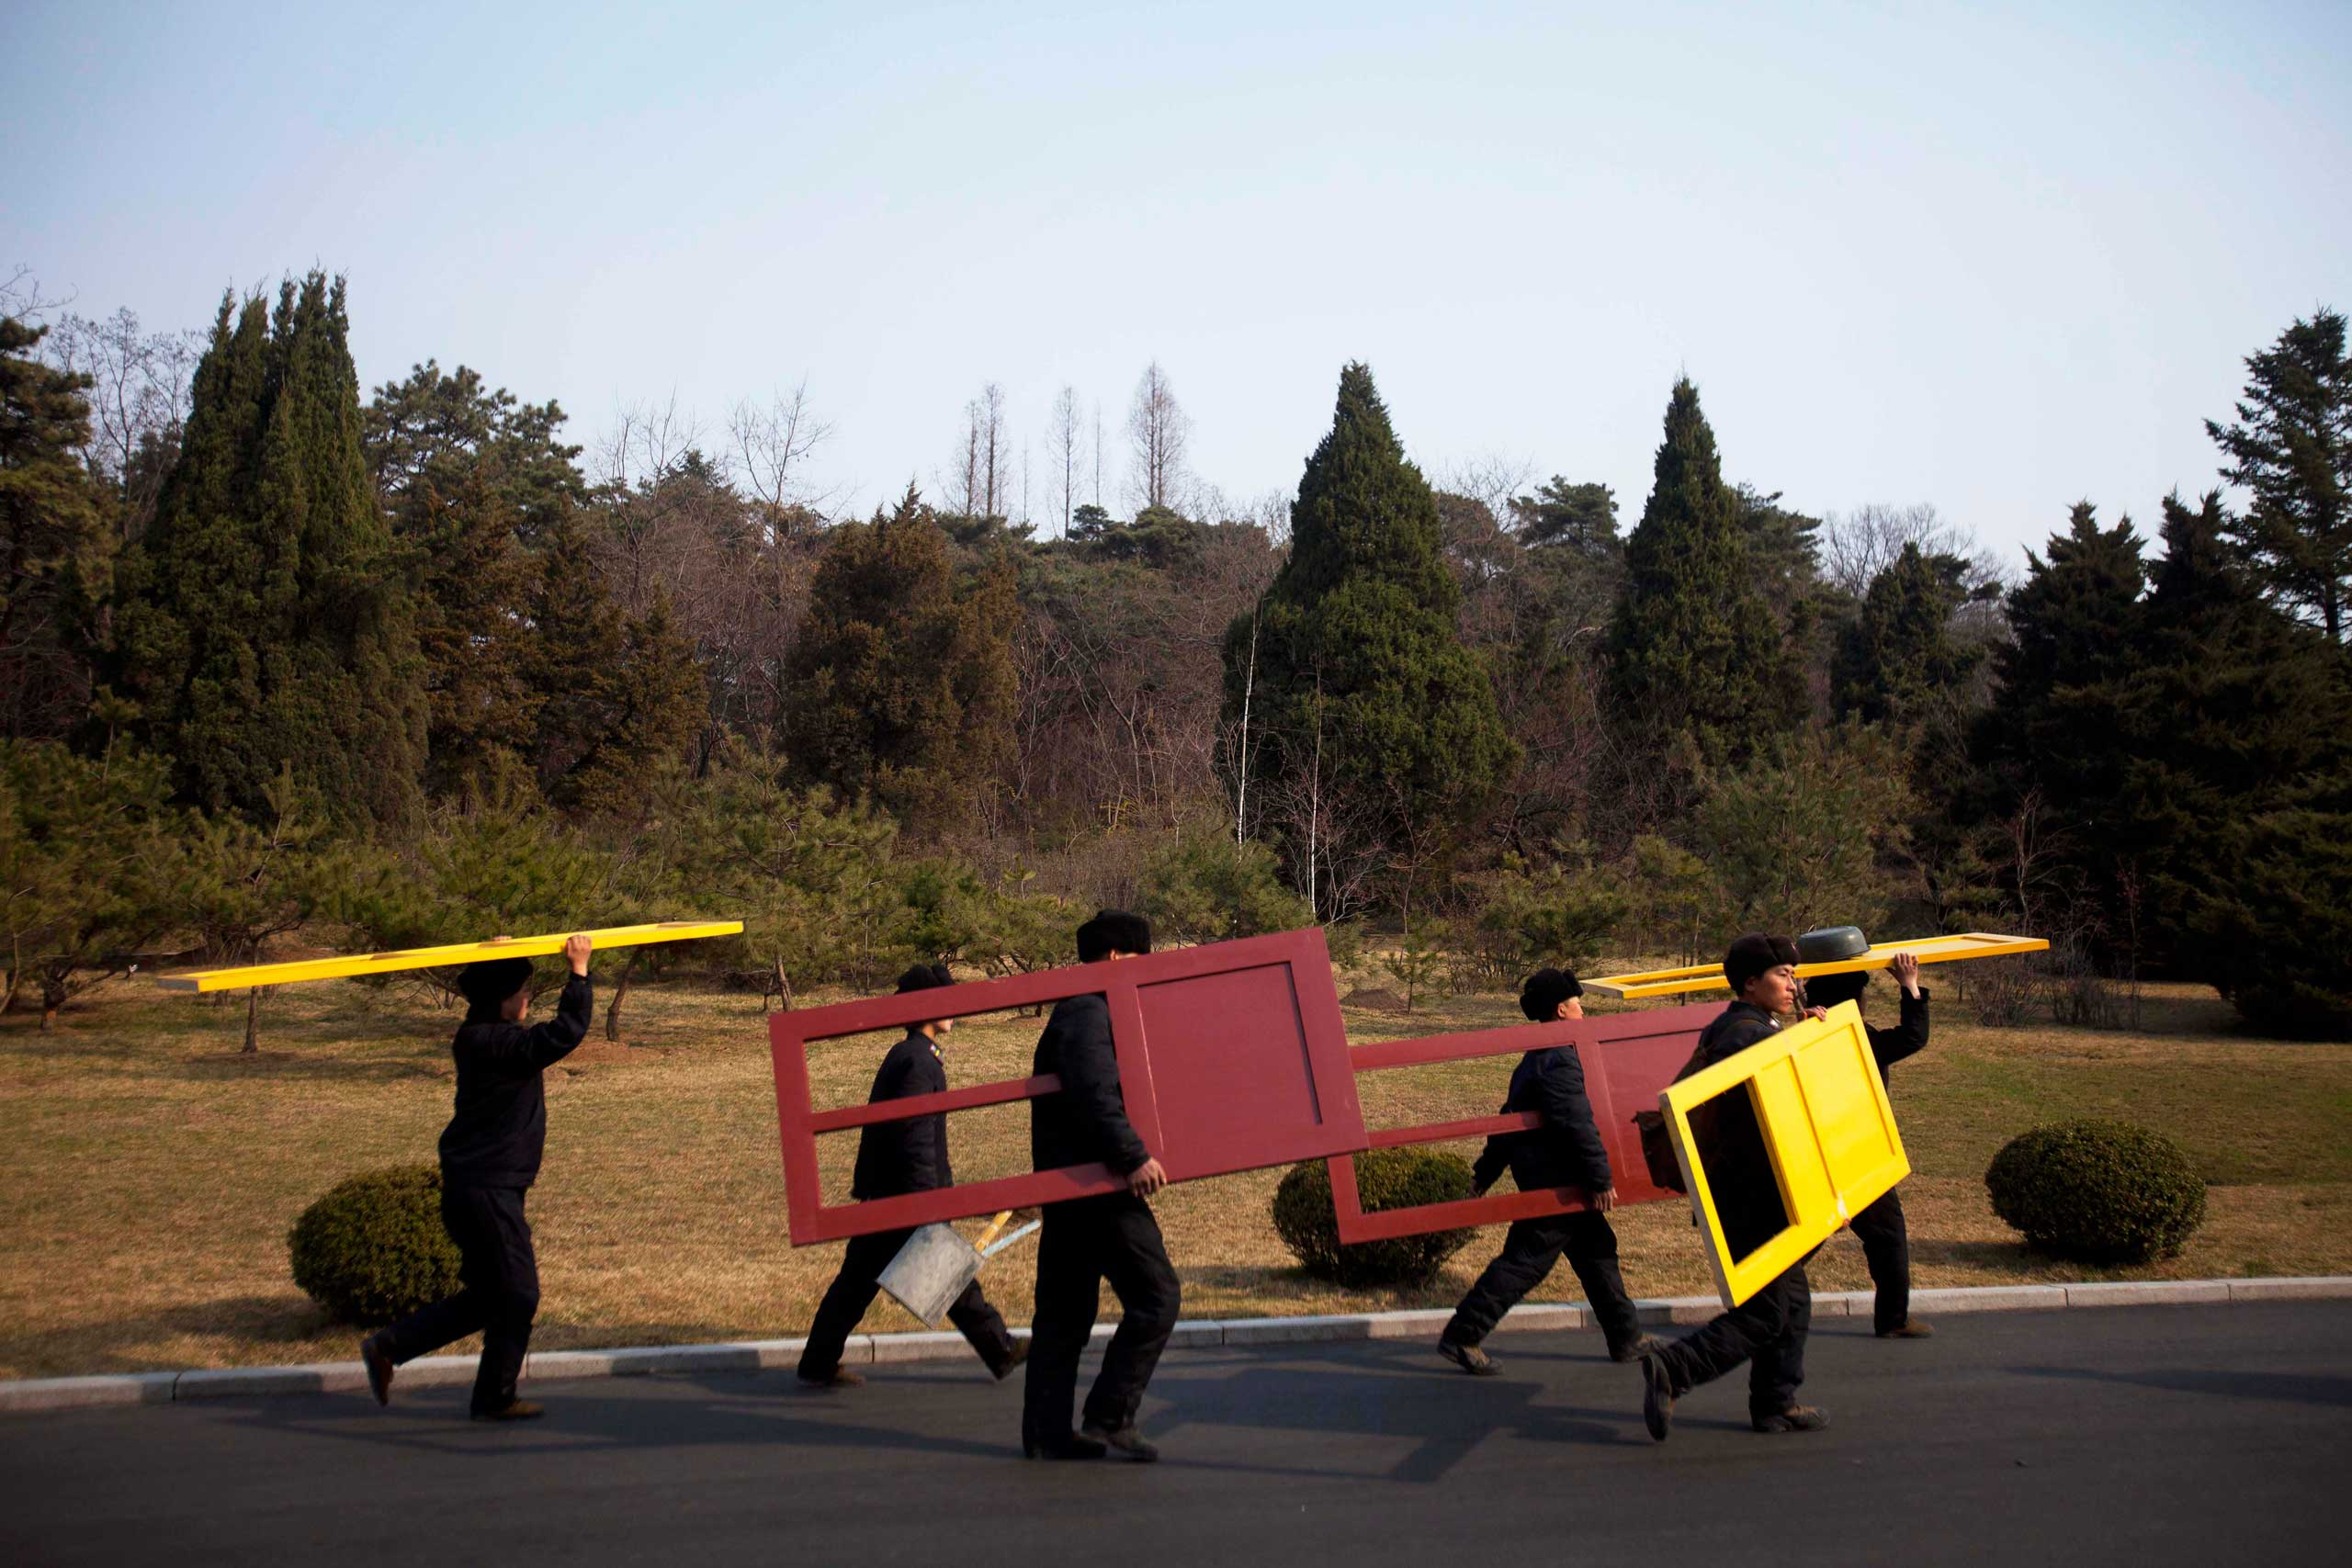 April 13, 2011. Workers carry painted doors along a road in Mangyongdae, North Korea.